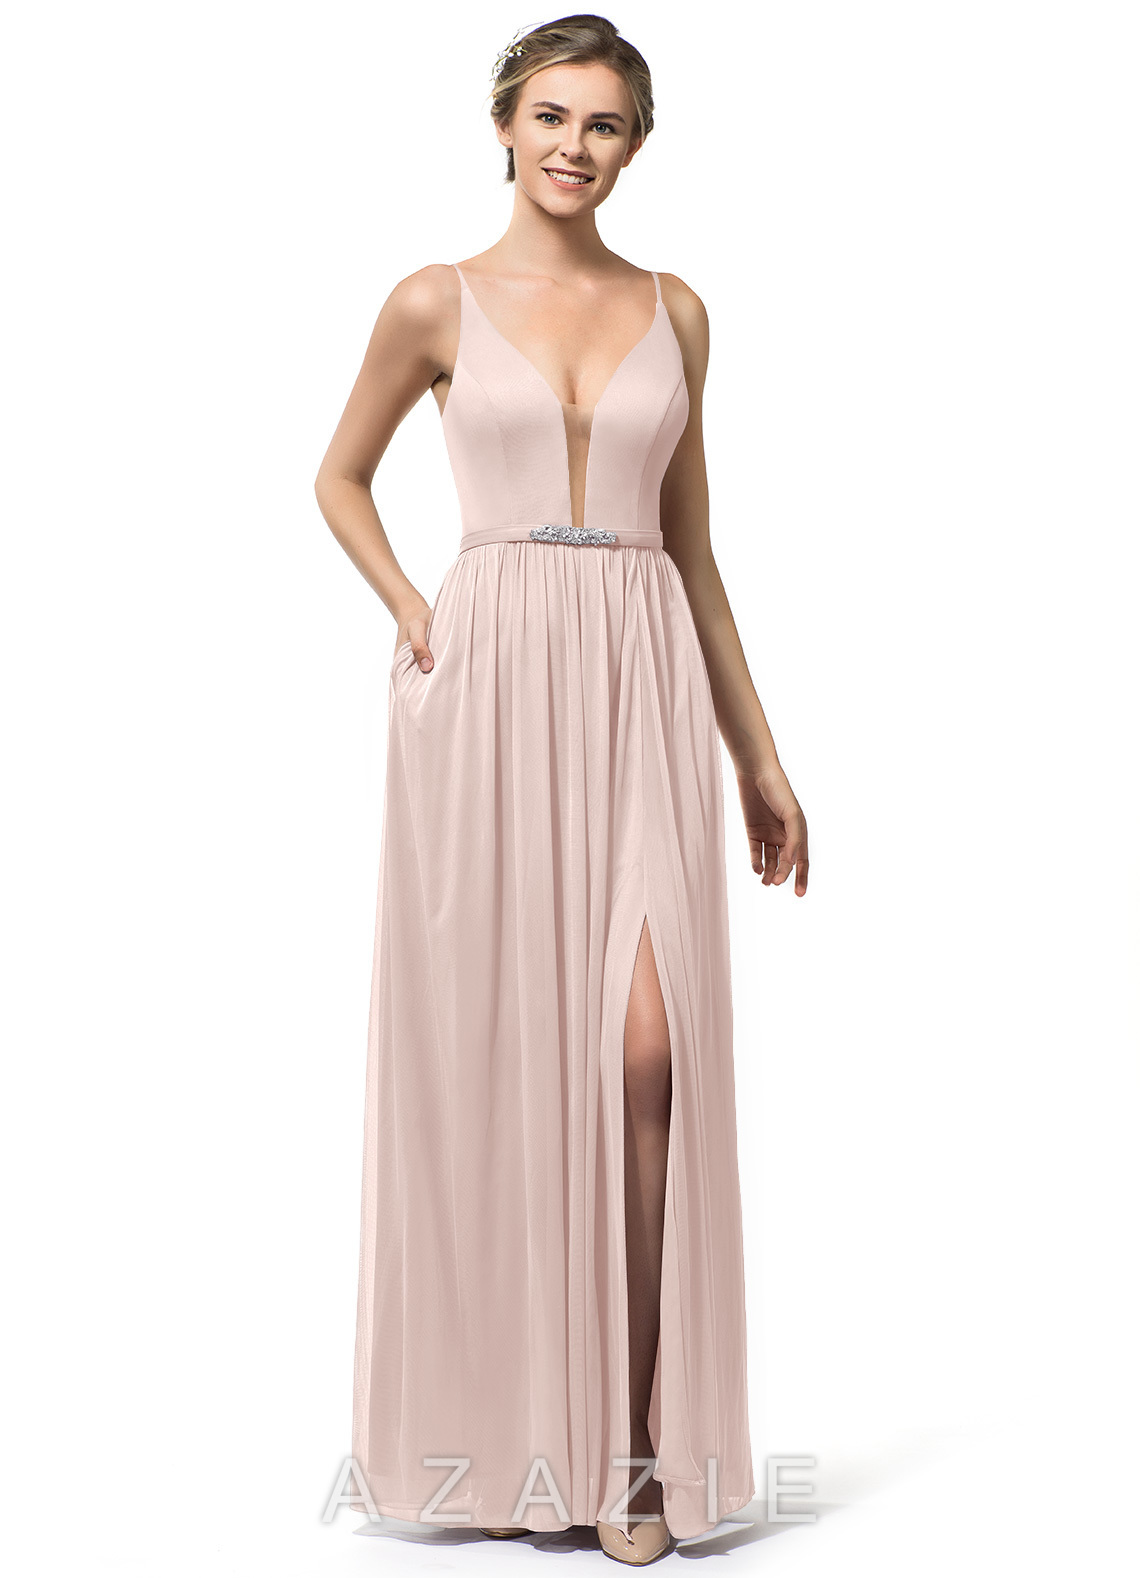 a6df05d26f0 Azazie Leah Bridesmaid Dress